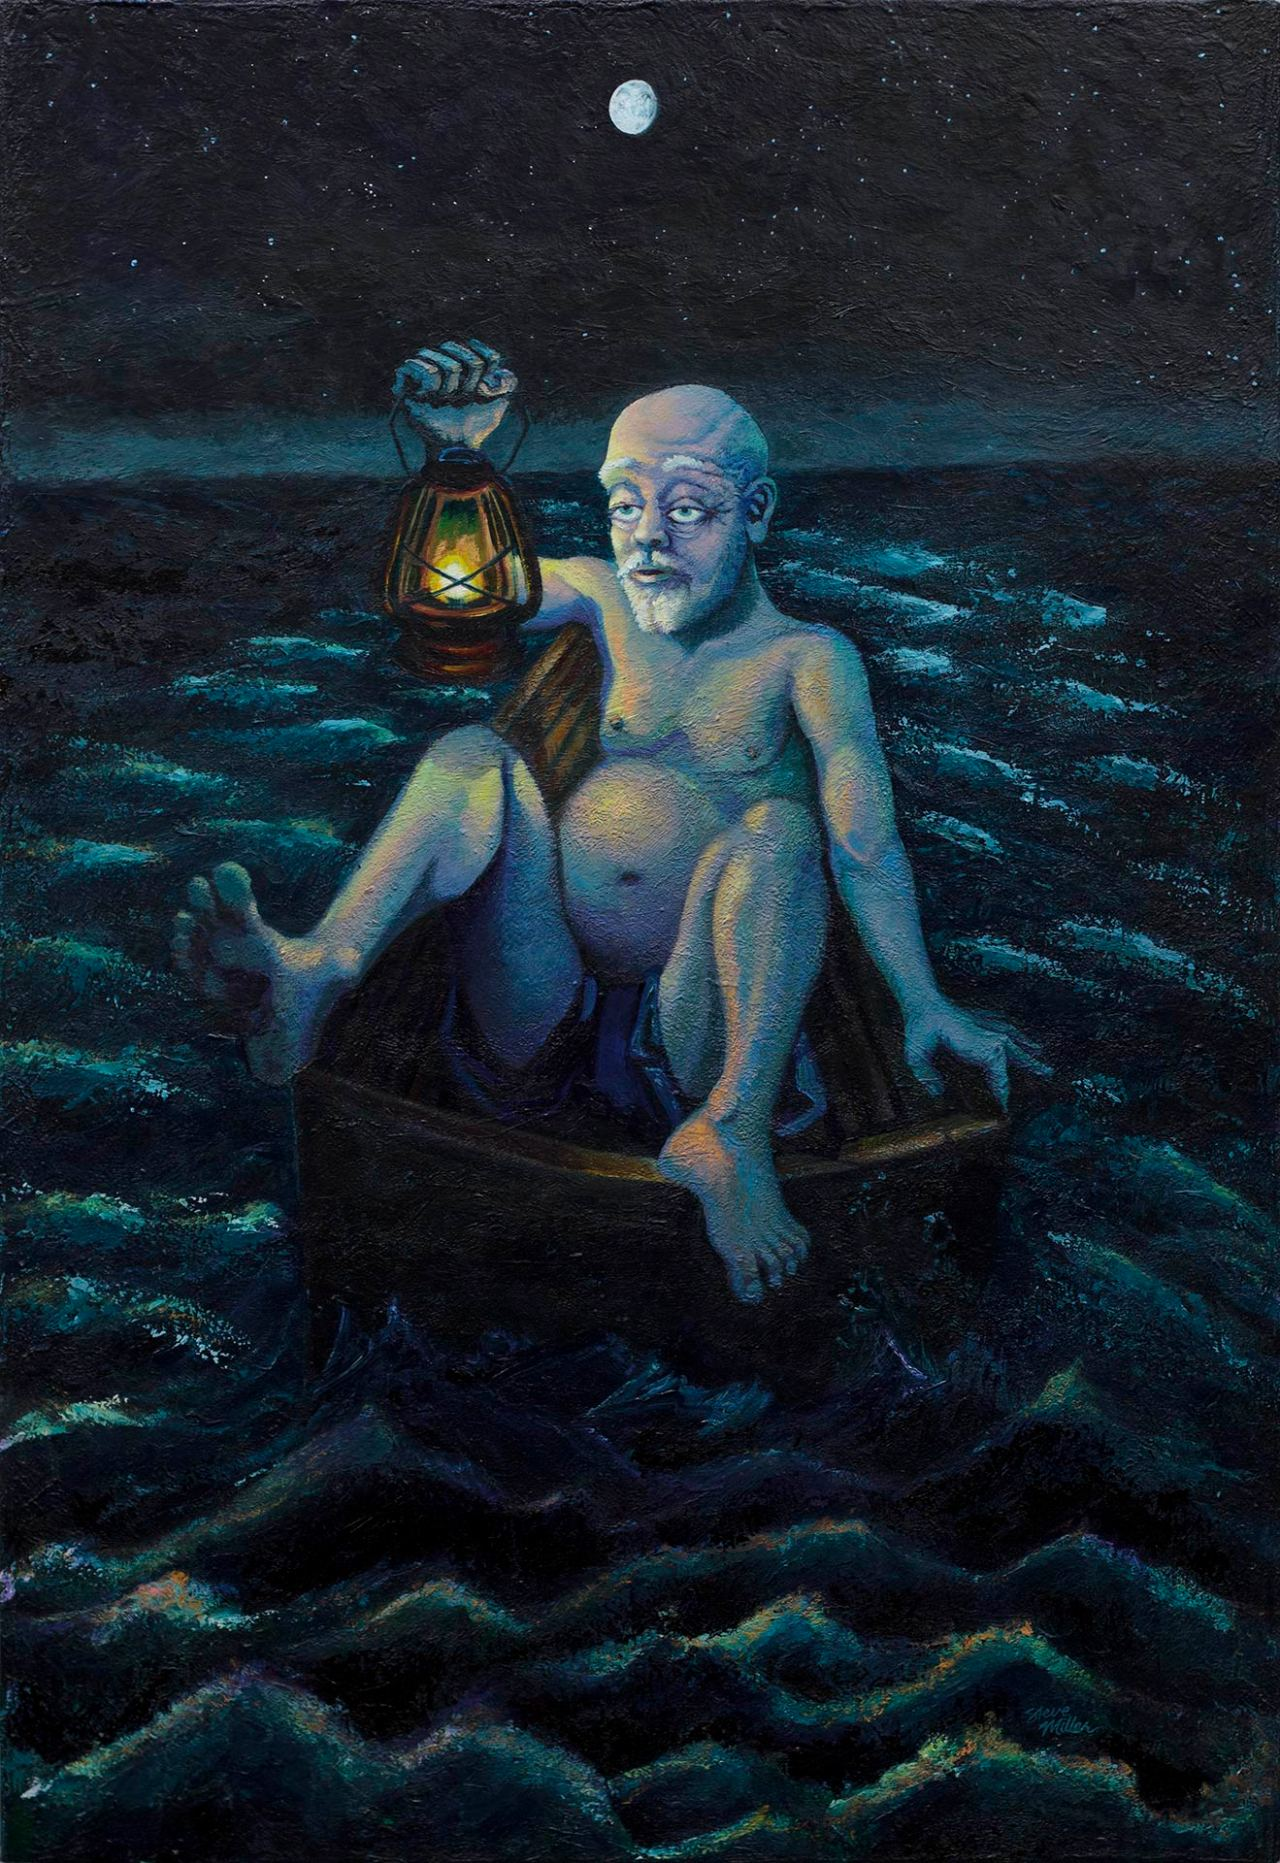 """Image of a painting by Steve Miller titled Fat Man Little Boat, 34"""" x 50"""", acrylic on canvas, completed 10/1/14 © Steve Miller 2014, featuring an older large white male, nearly naked, sitting in a tiny rowboat in the middle of the sea, at night, holding a lantern."""